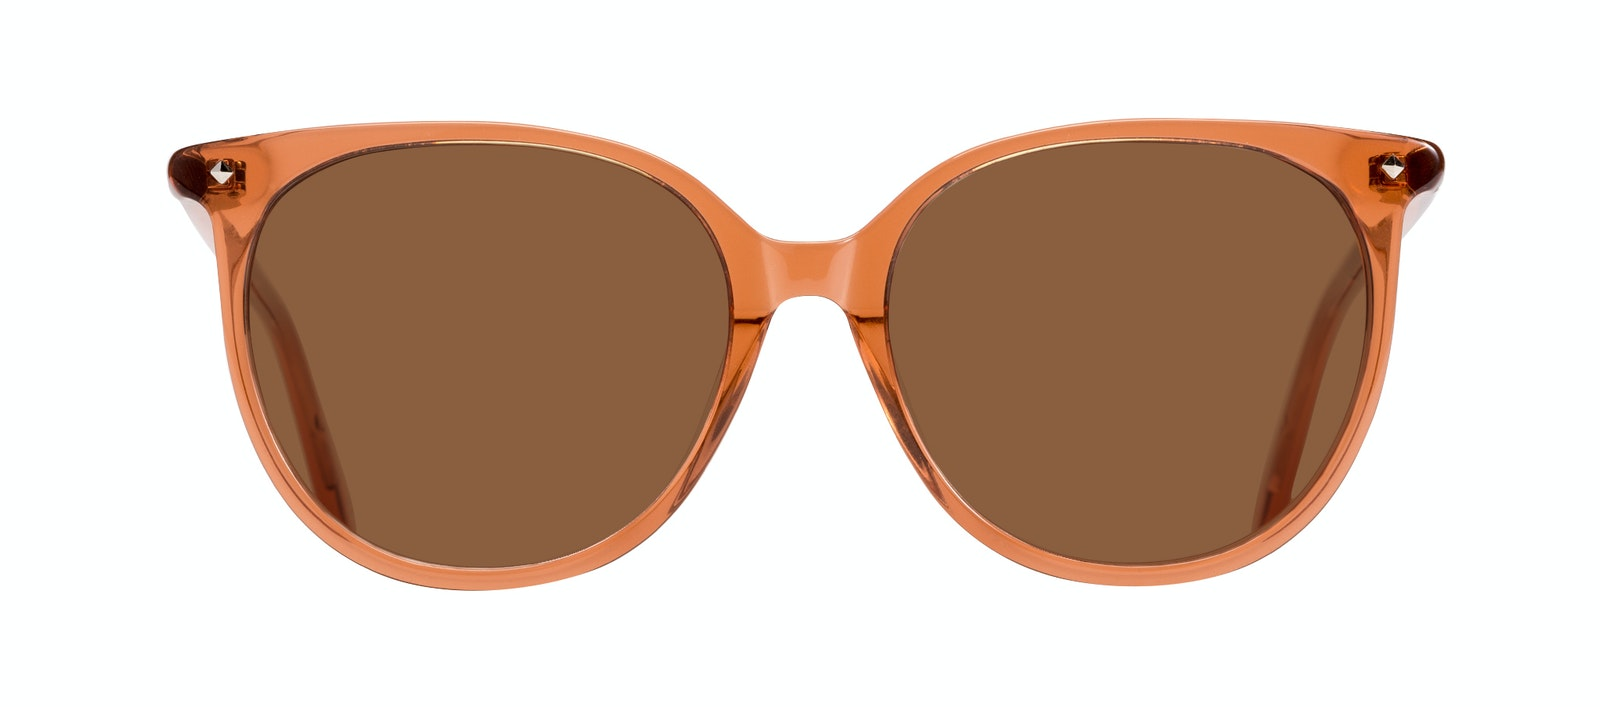 Affordable Fashion Glasses Round Sunglasses Women Area Umber Front